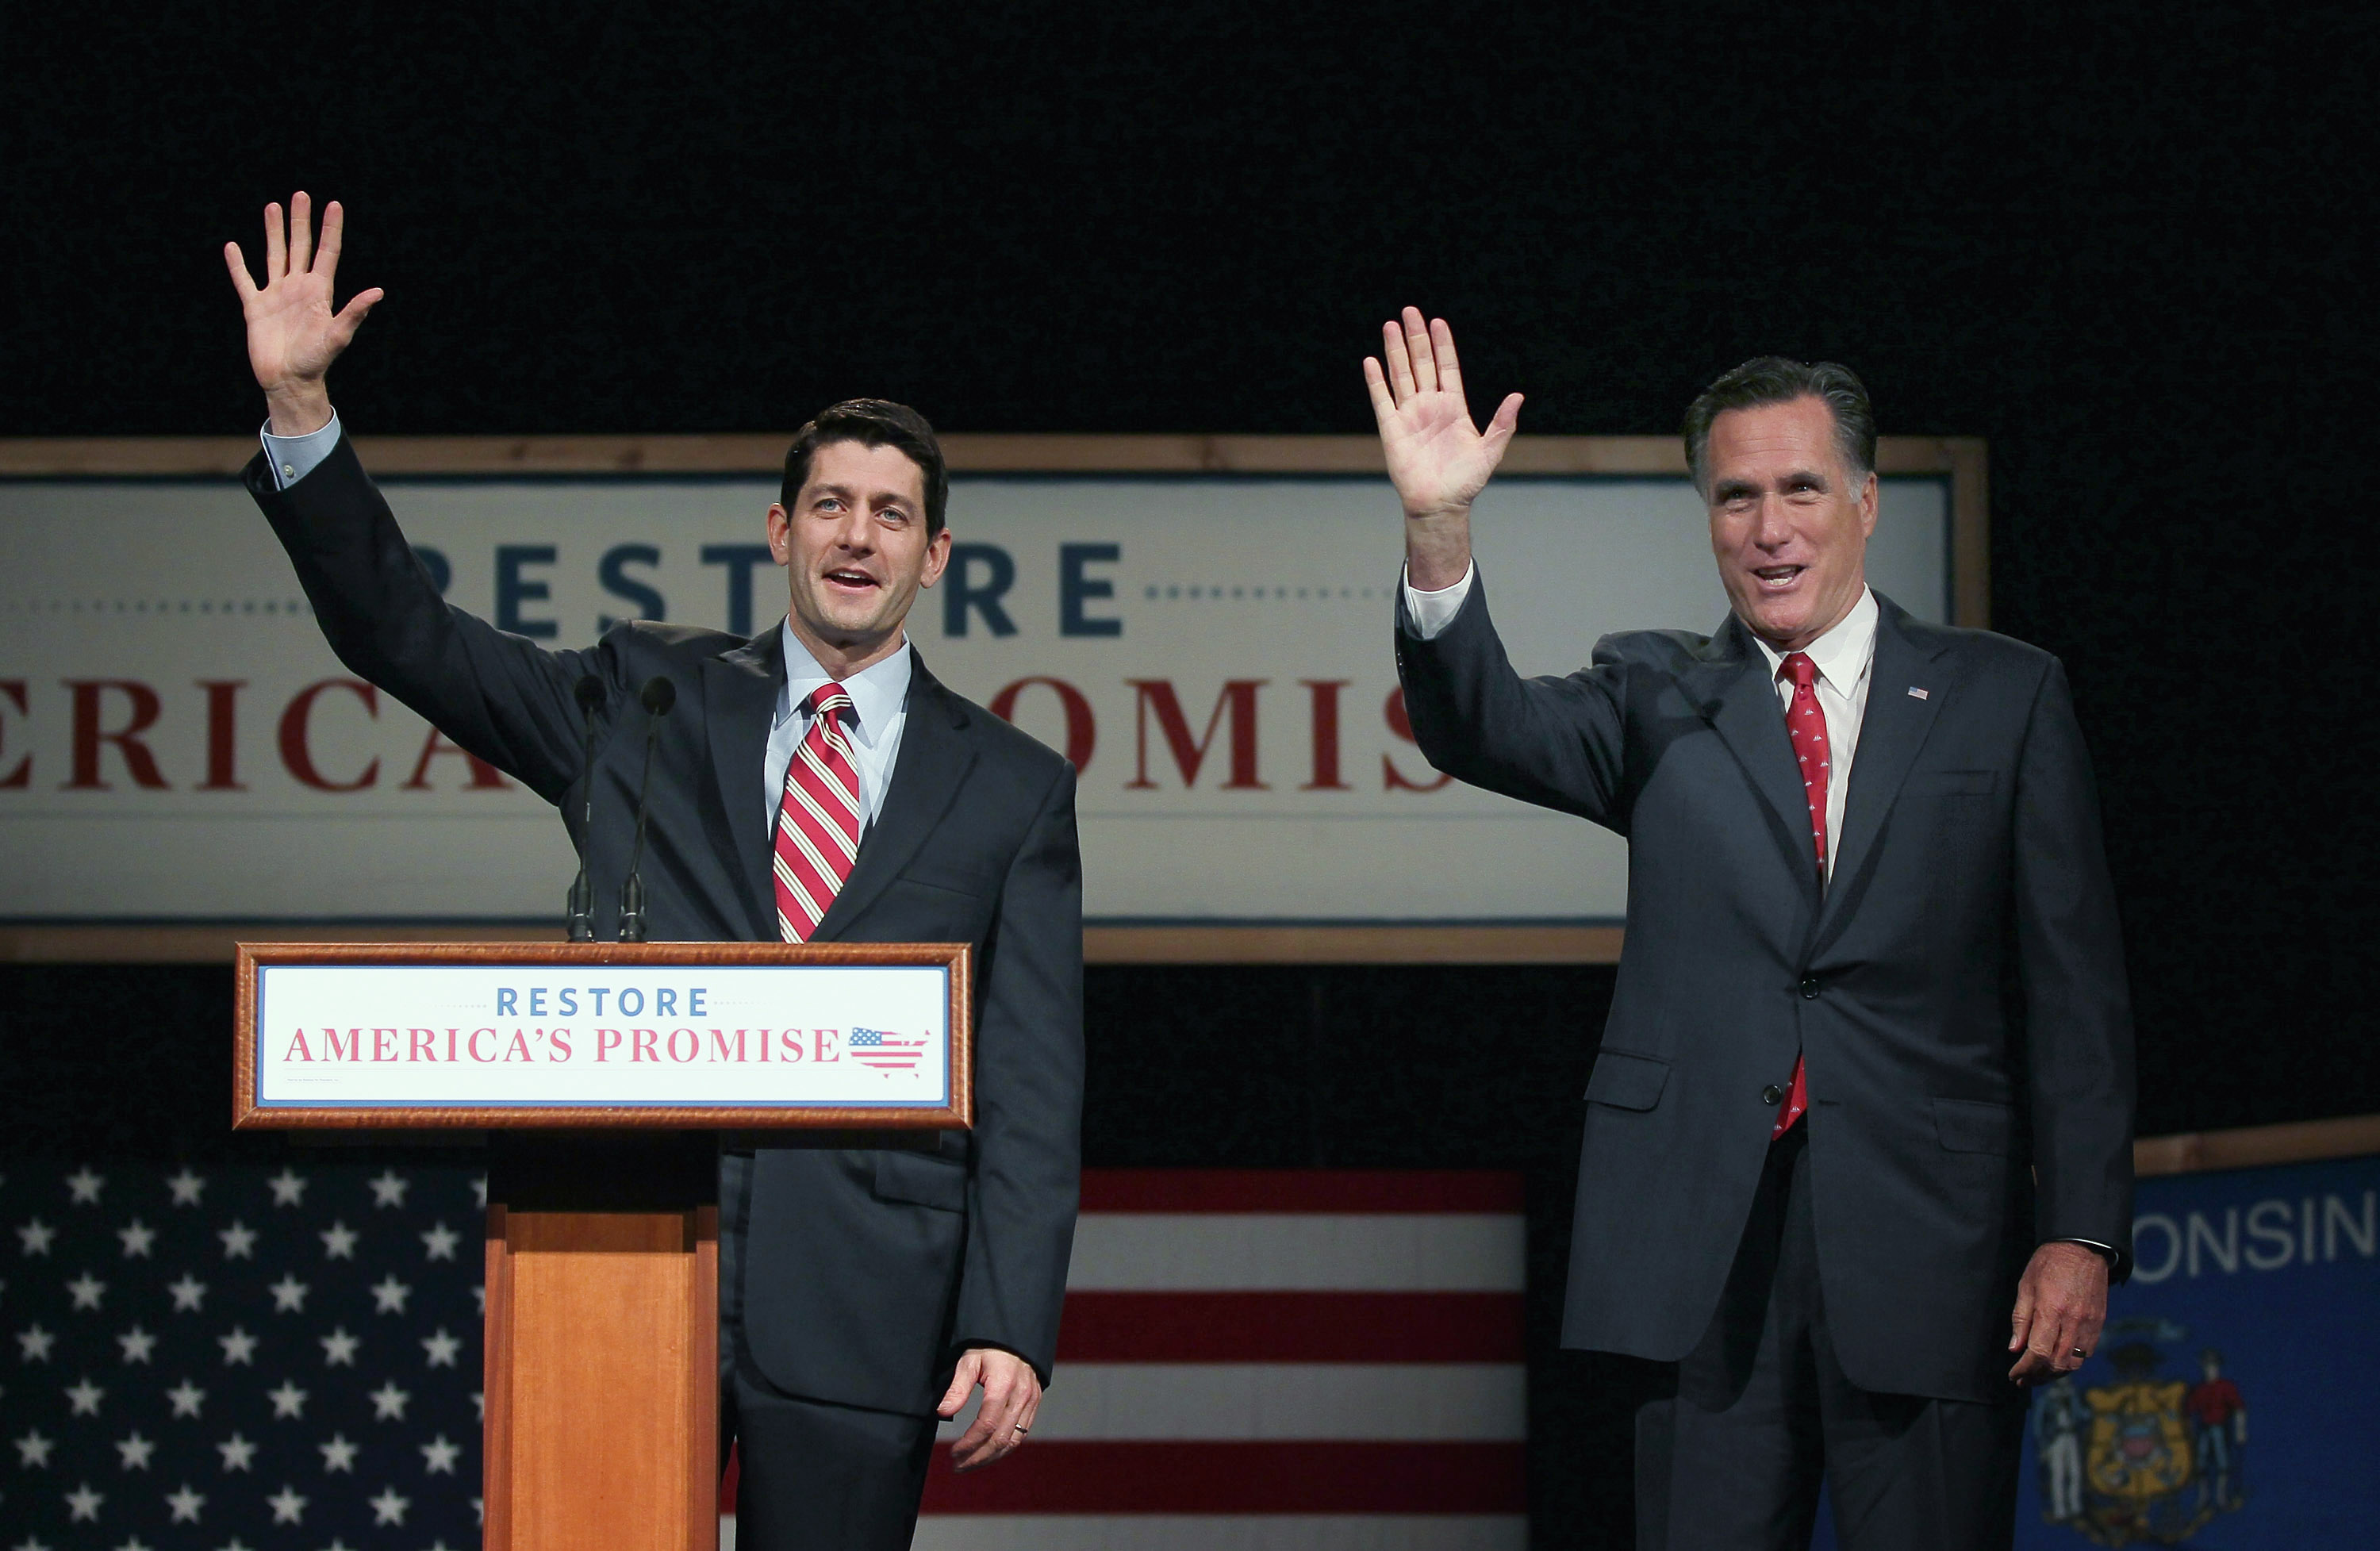 From 'a great Wisconsinite' to 'some other Wisconsinite': Santorum's tone on Paul Ryan shifts after Romney endorsement